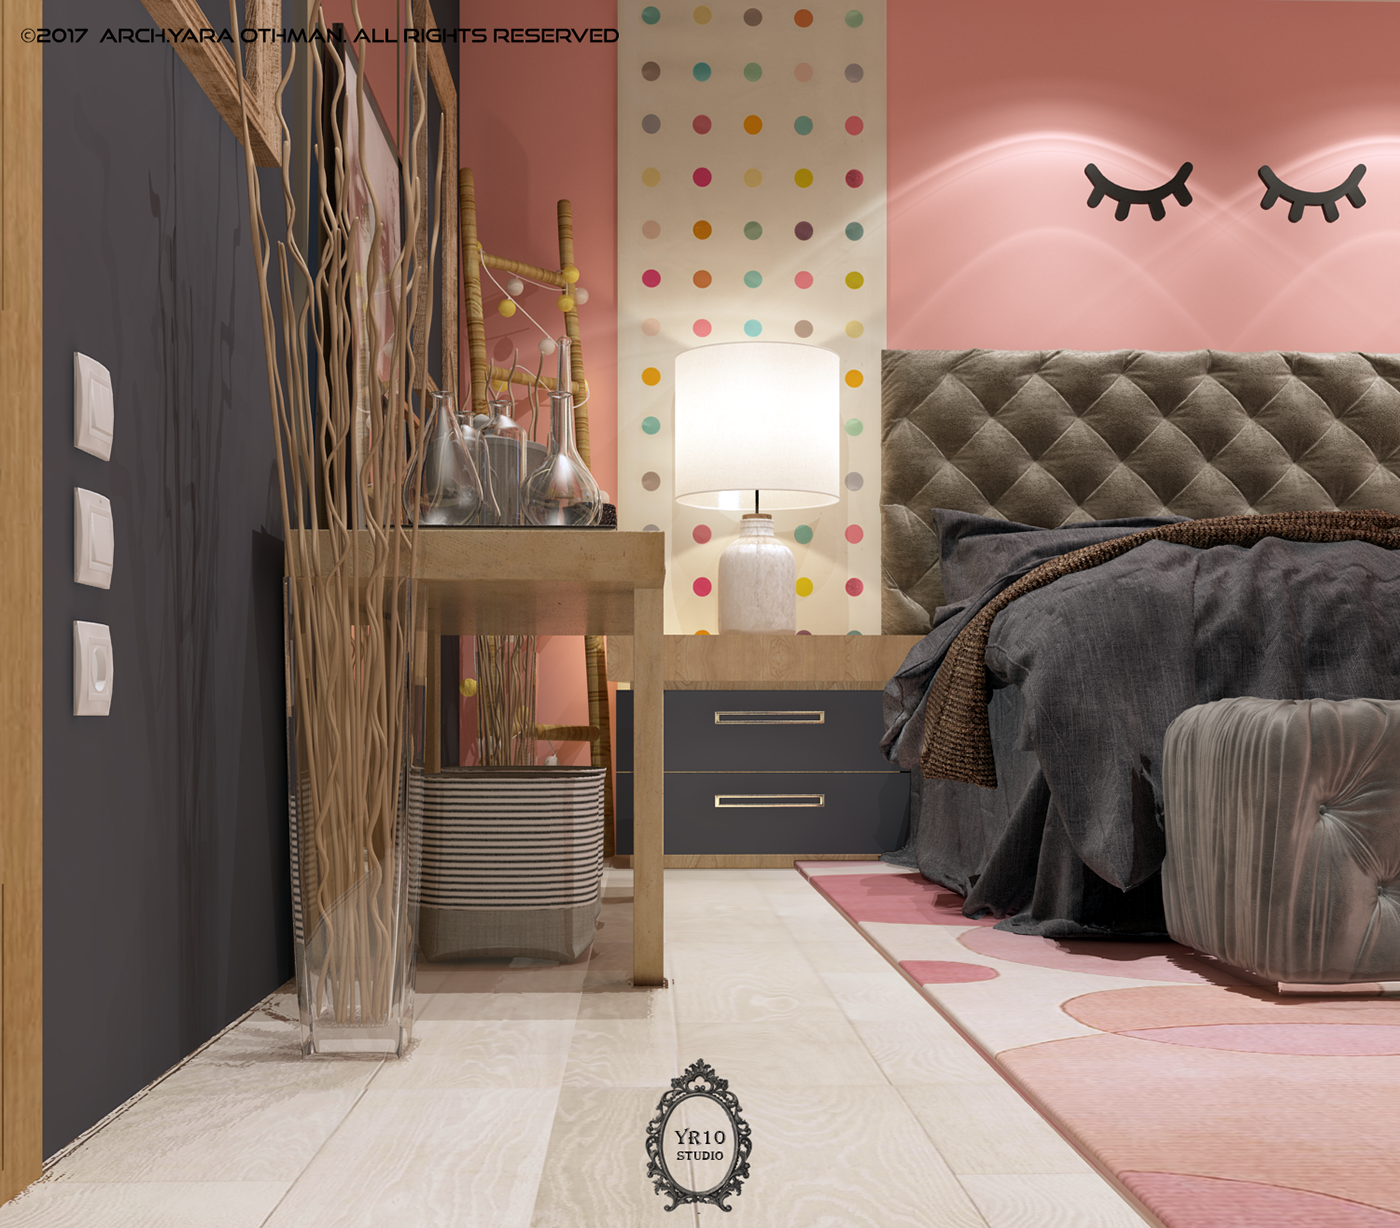 NAVY PINKY ROOM on Behance